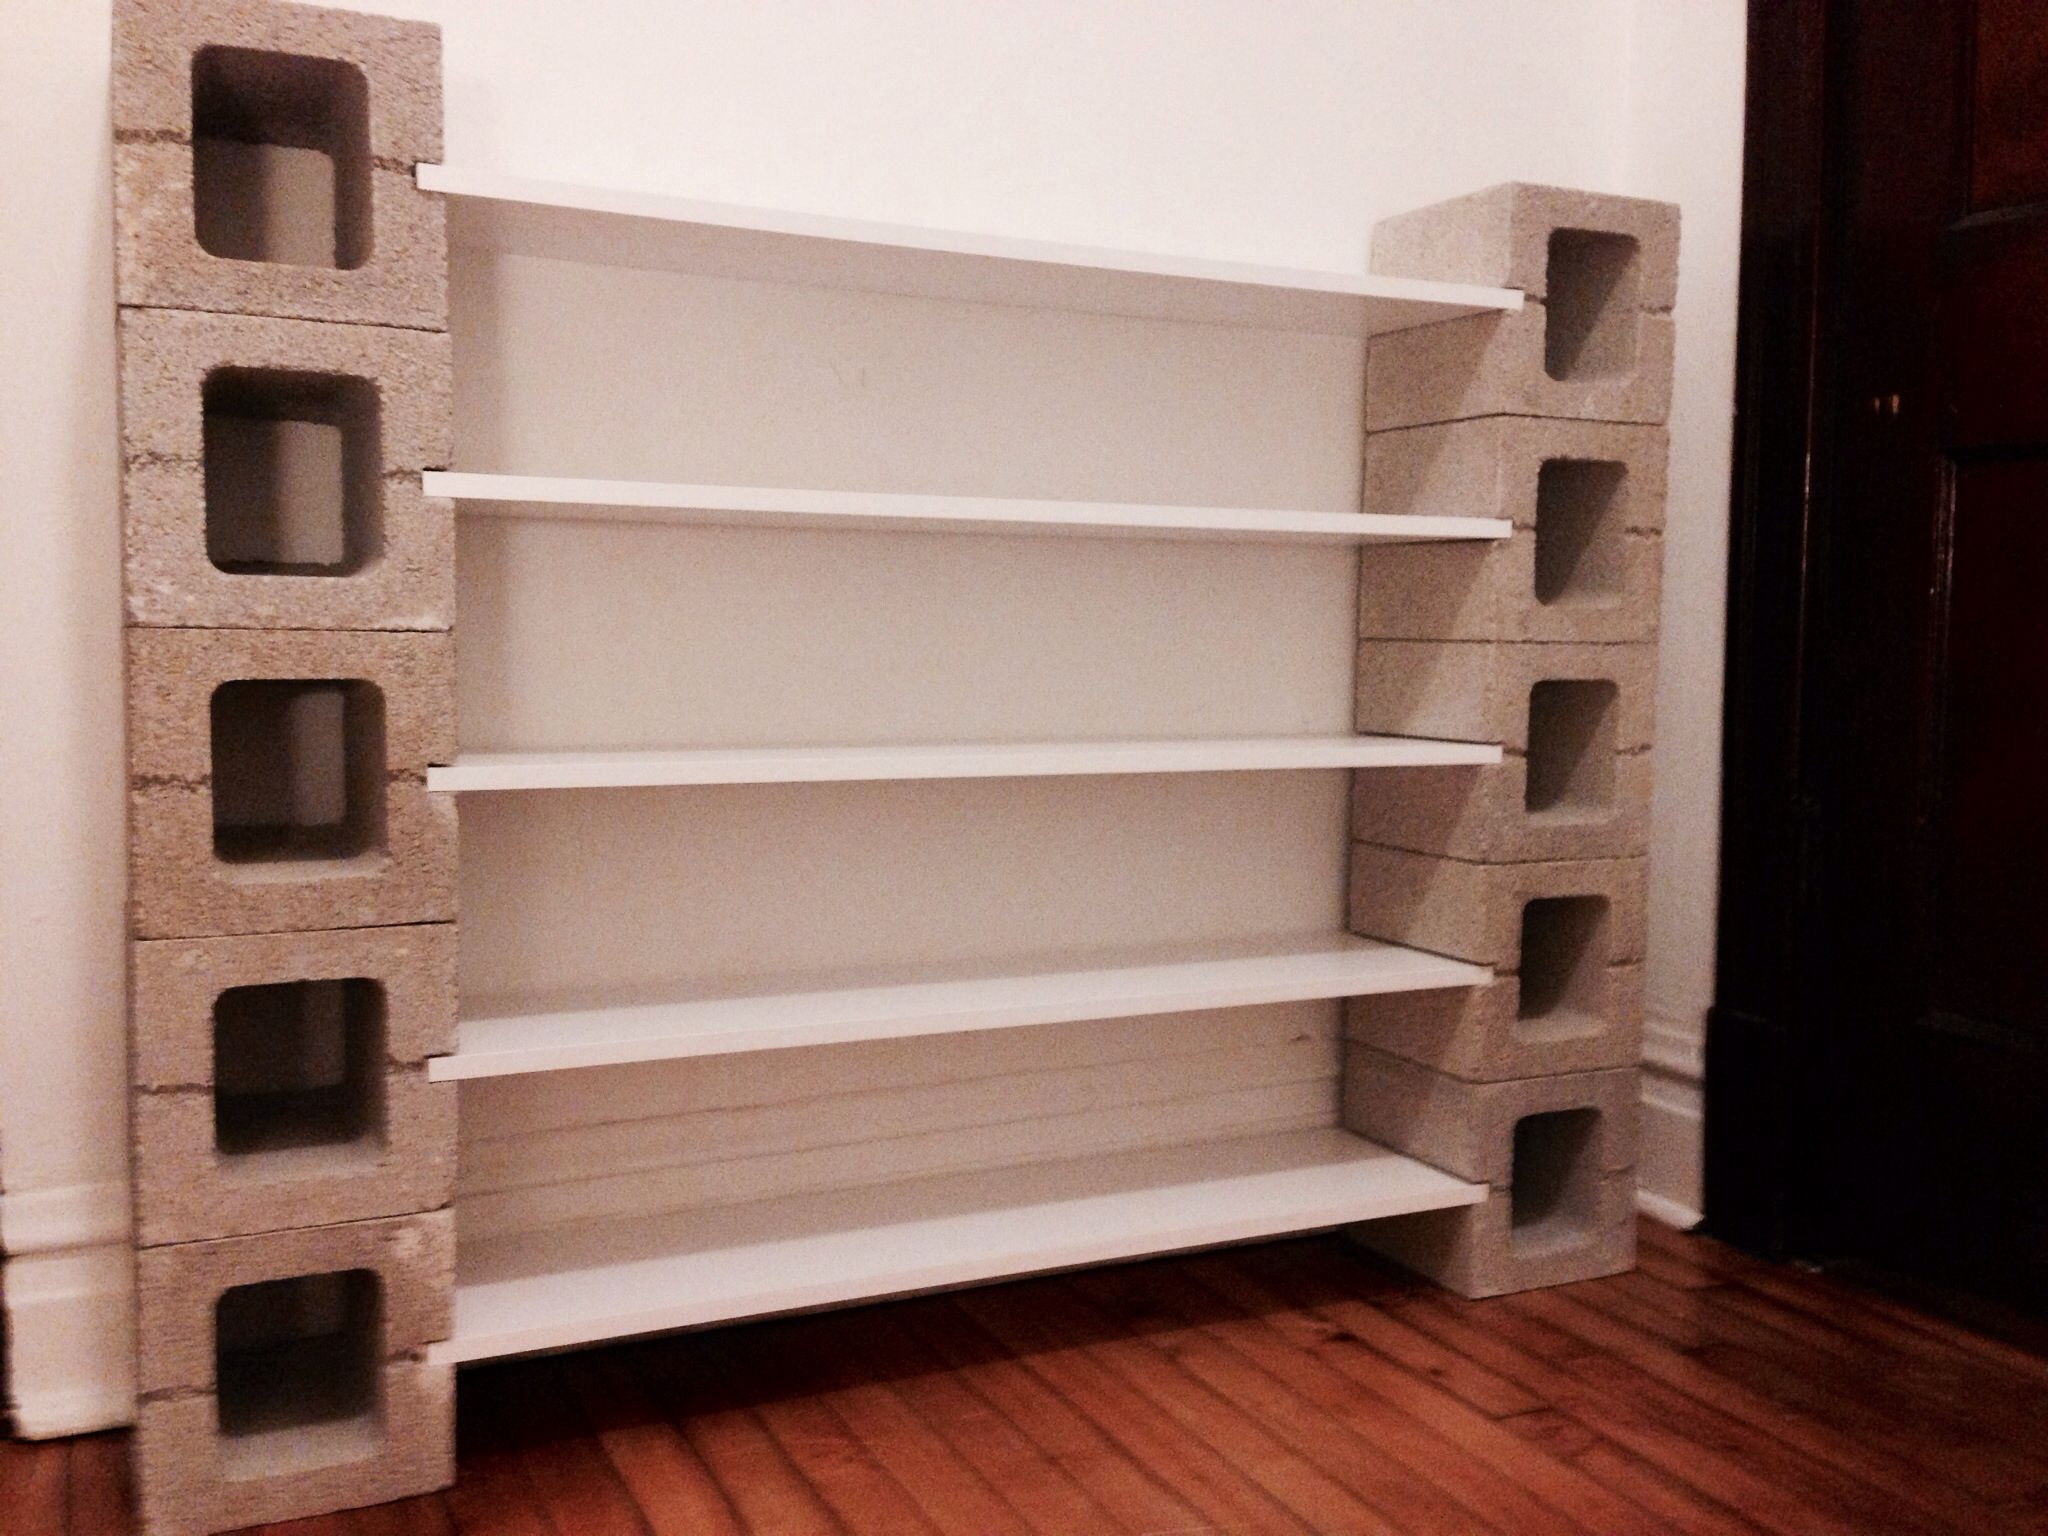 Cinder Block Shelves Ideas With Concrete Blocks